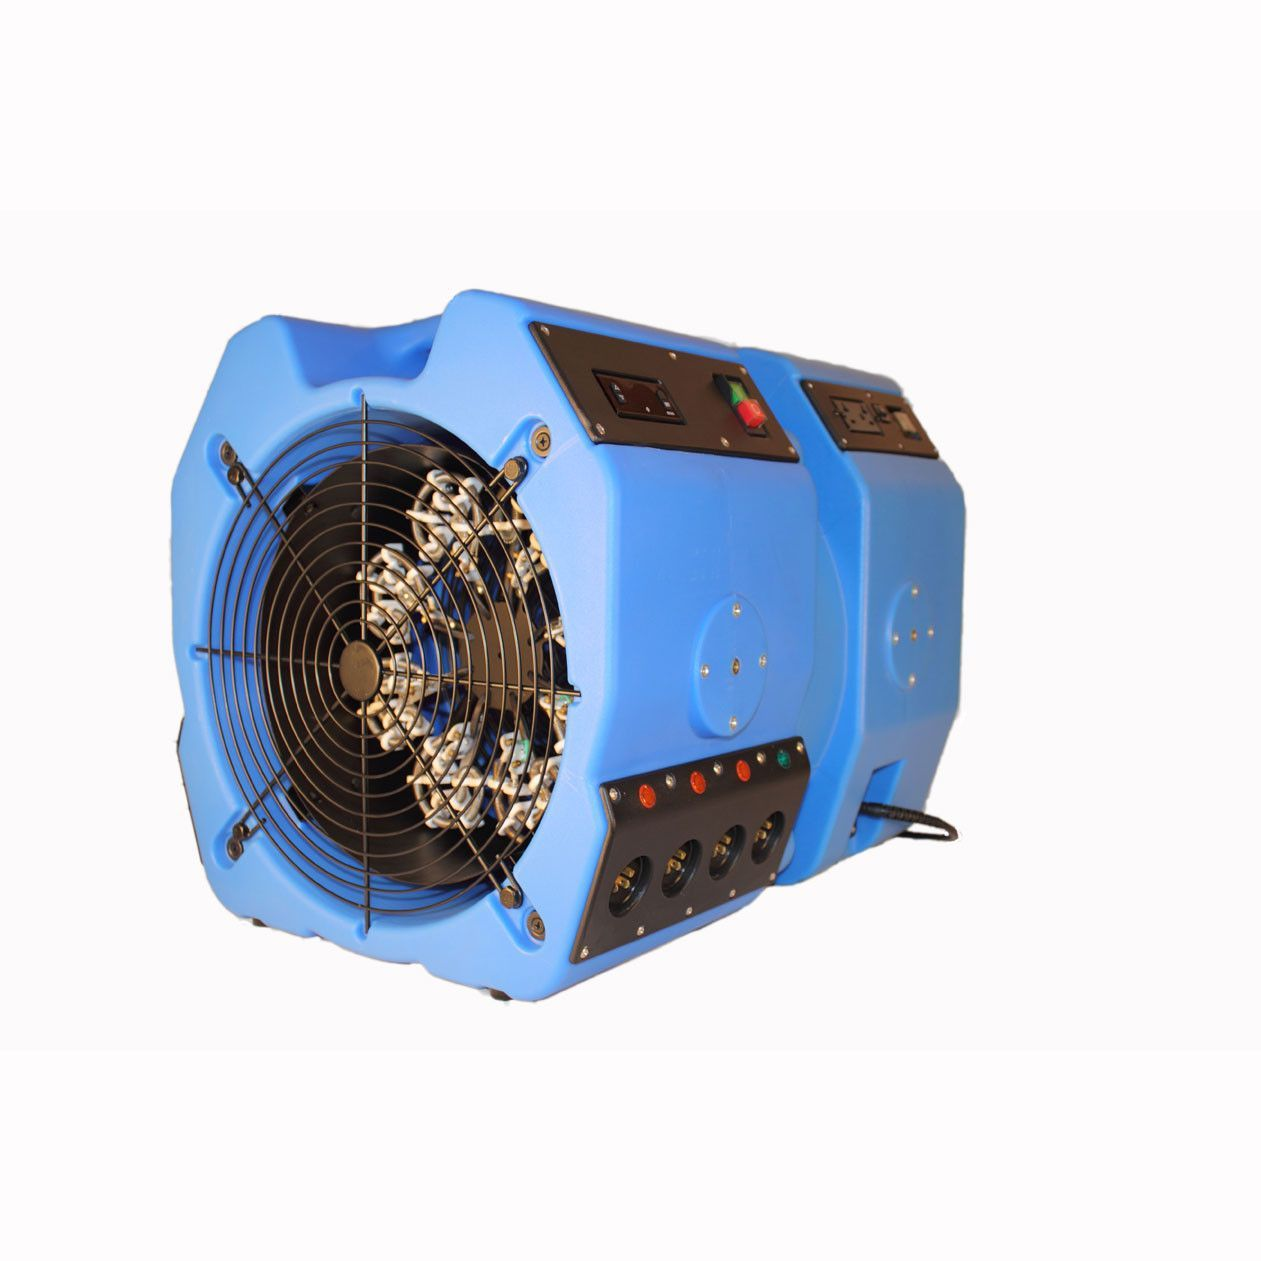 radial 8 - bed bug heater and fan combo | fans and products